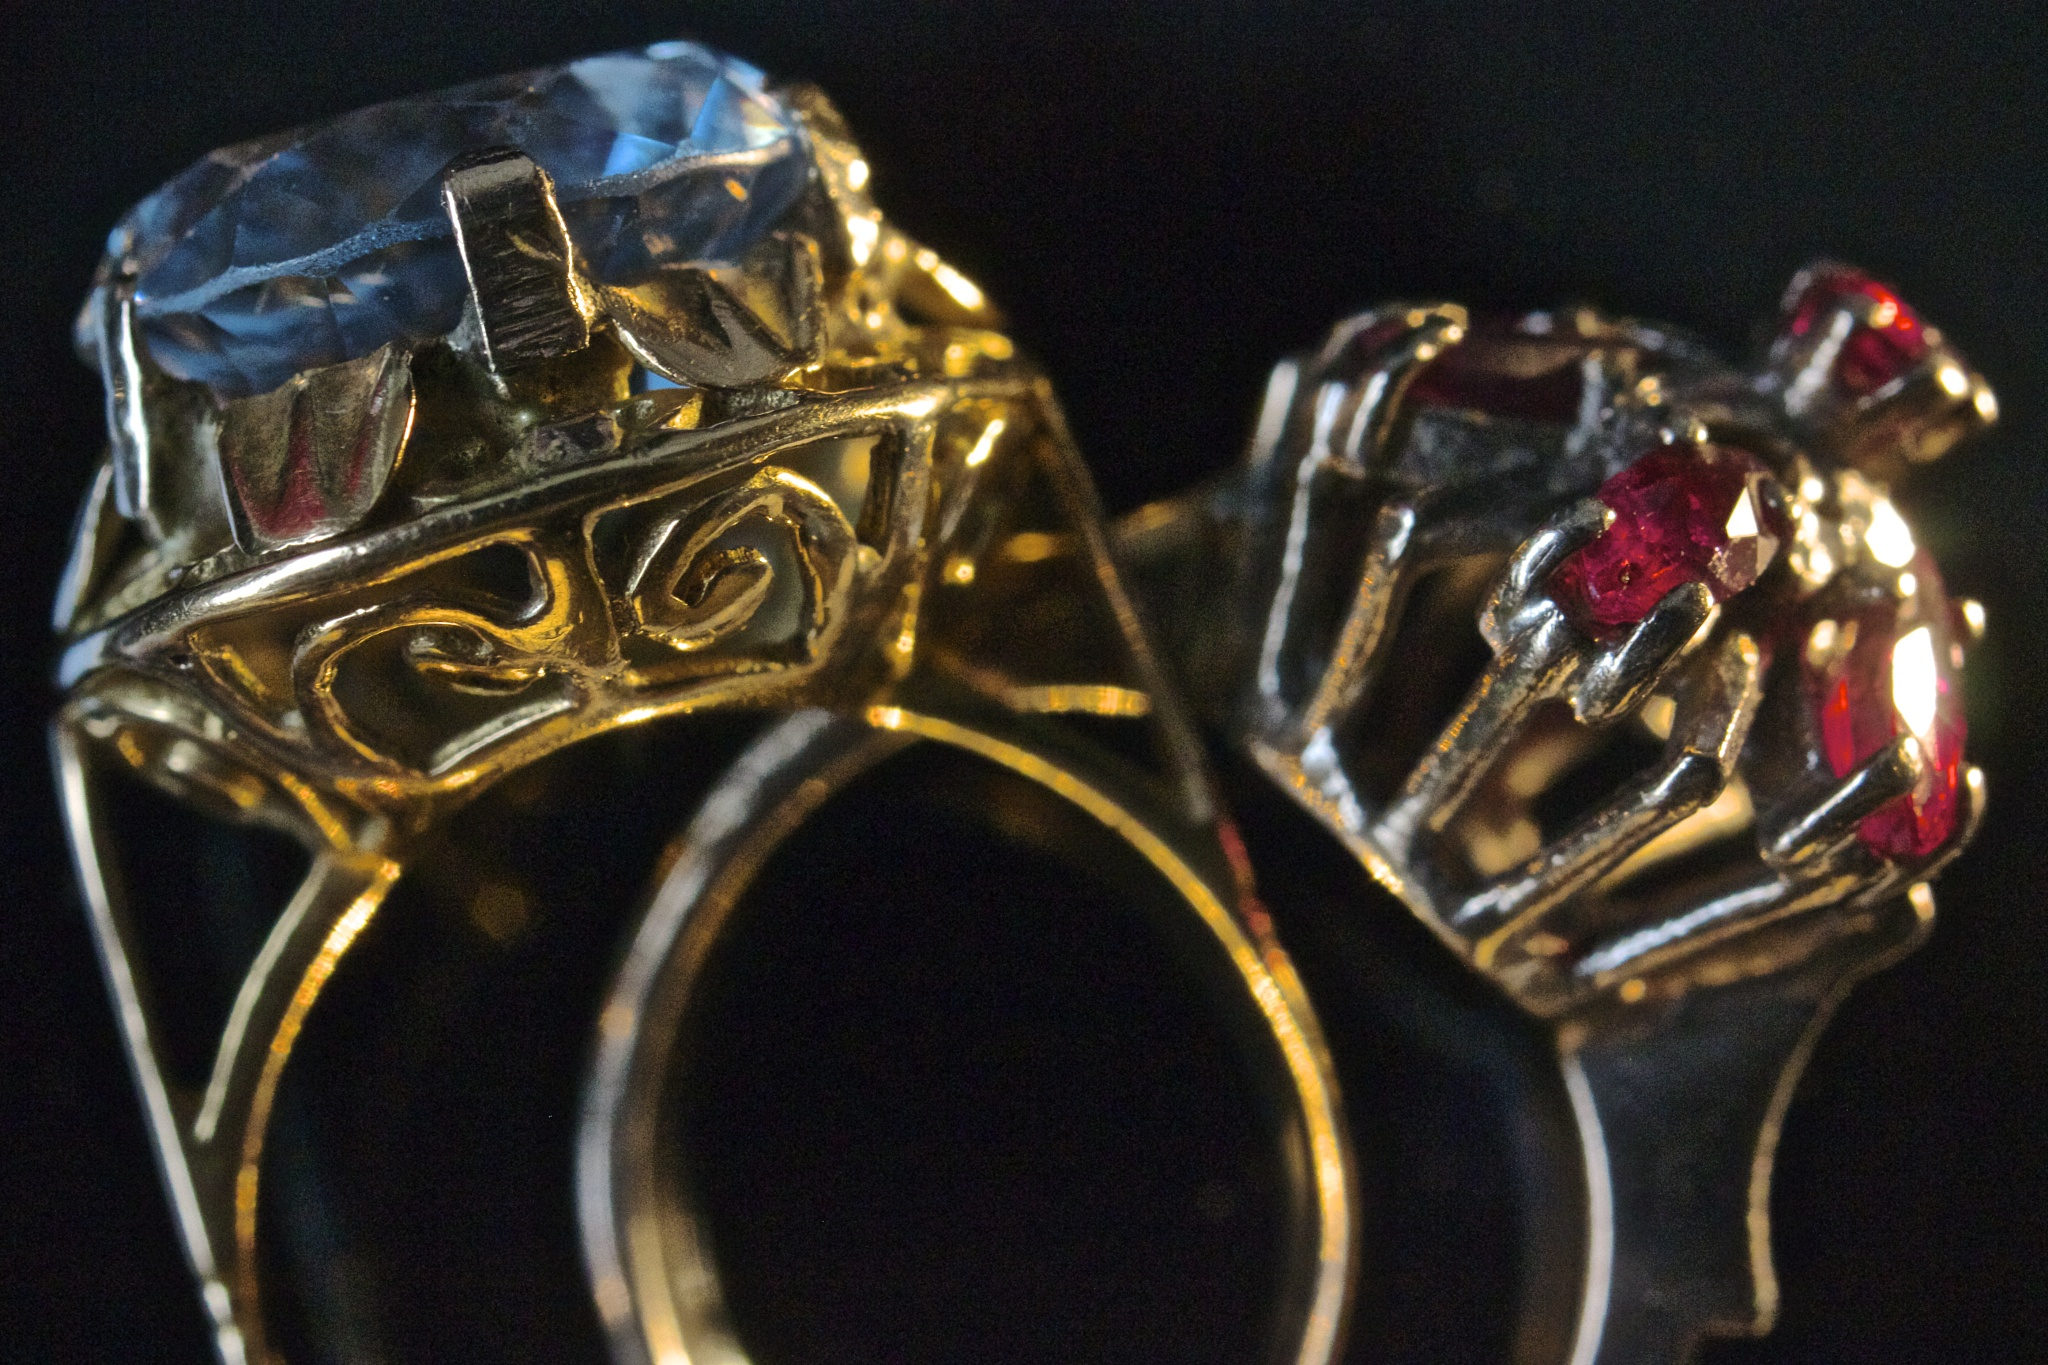 Rings by Azucena Kouwenhoven